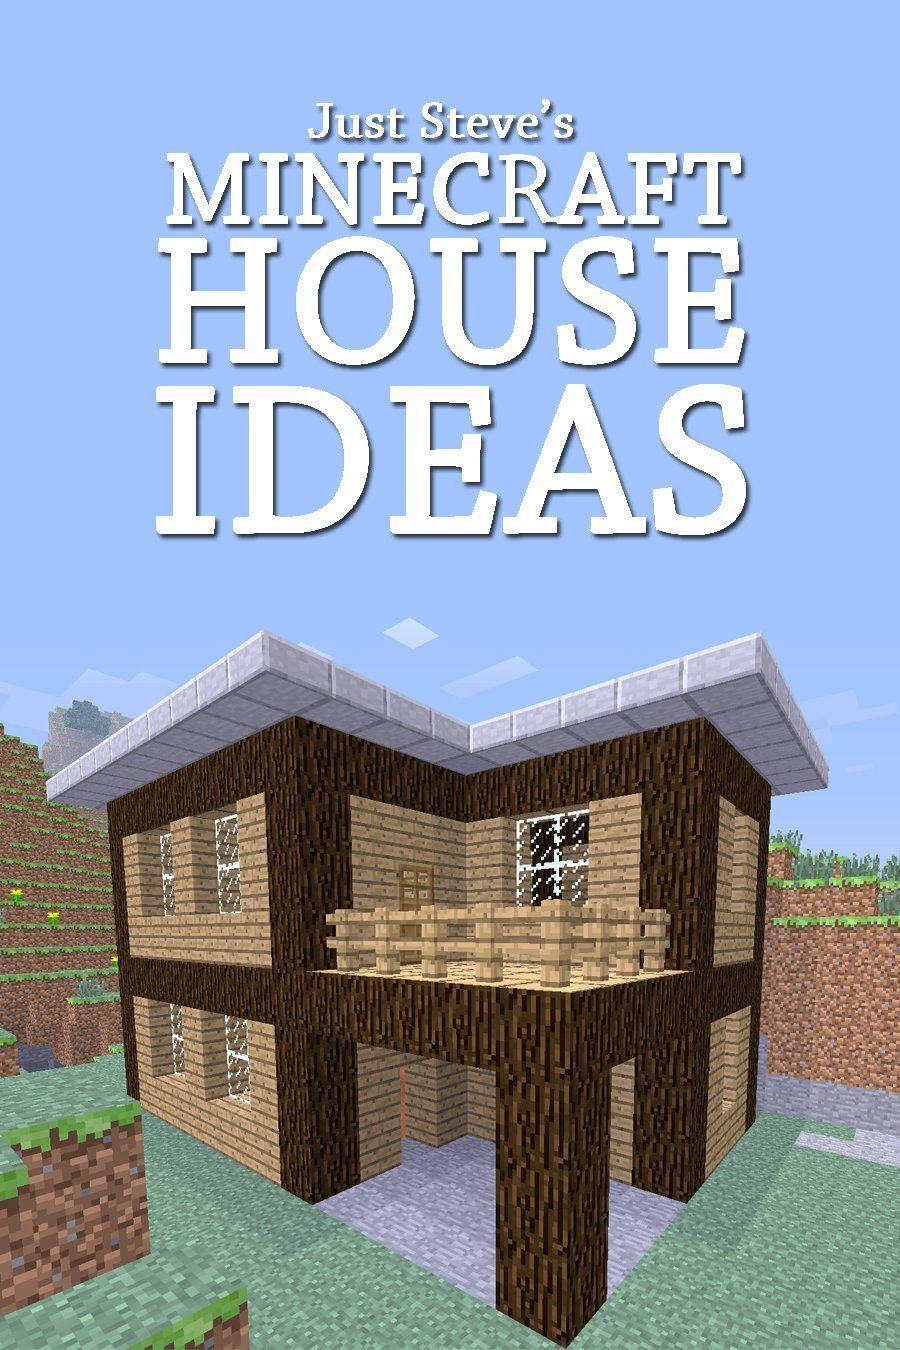 Minecraft House Ideas A Collection Of Blueprints For Great House Ideas In This Minecraft House